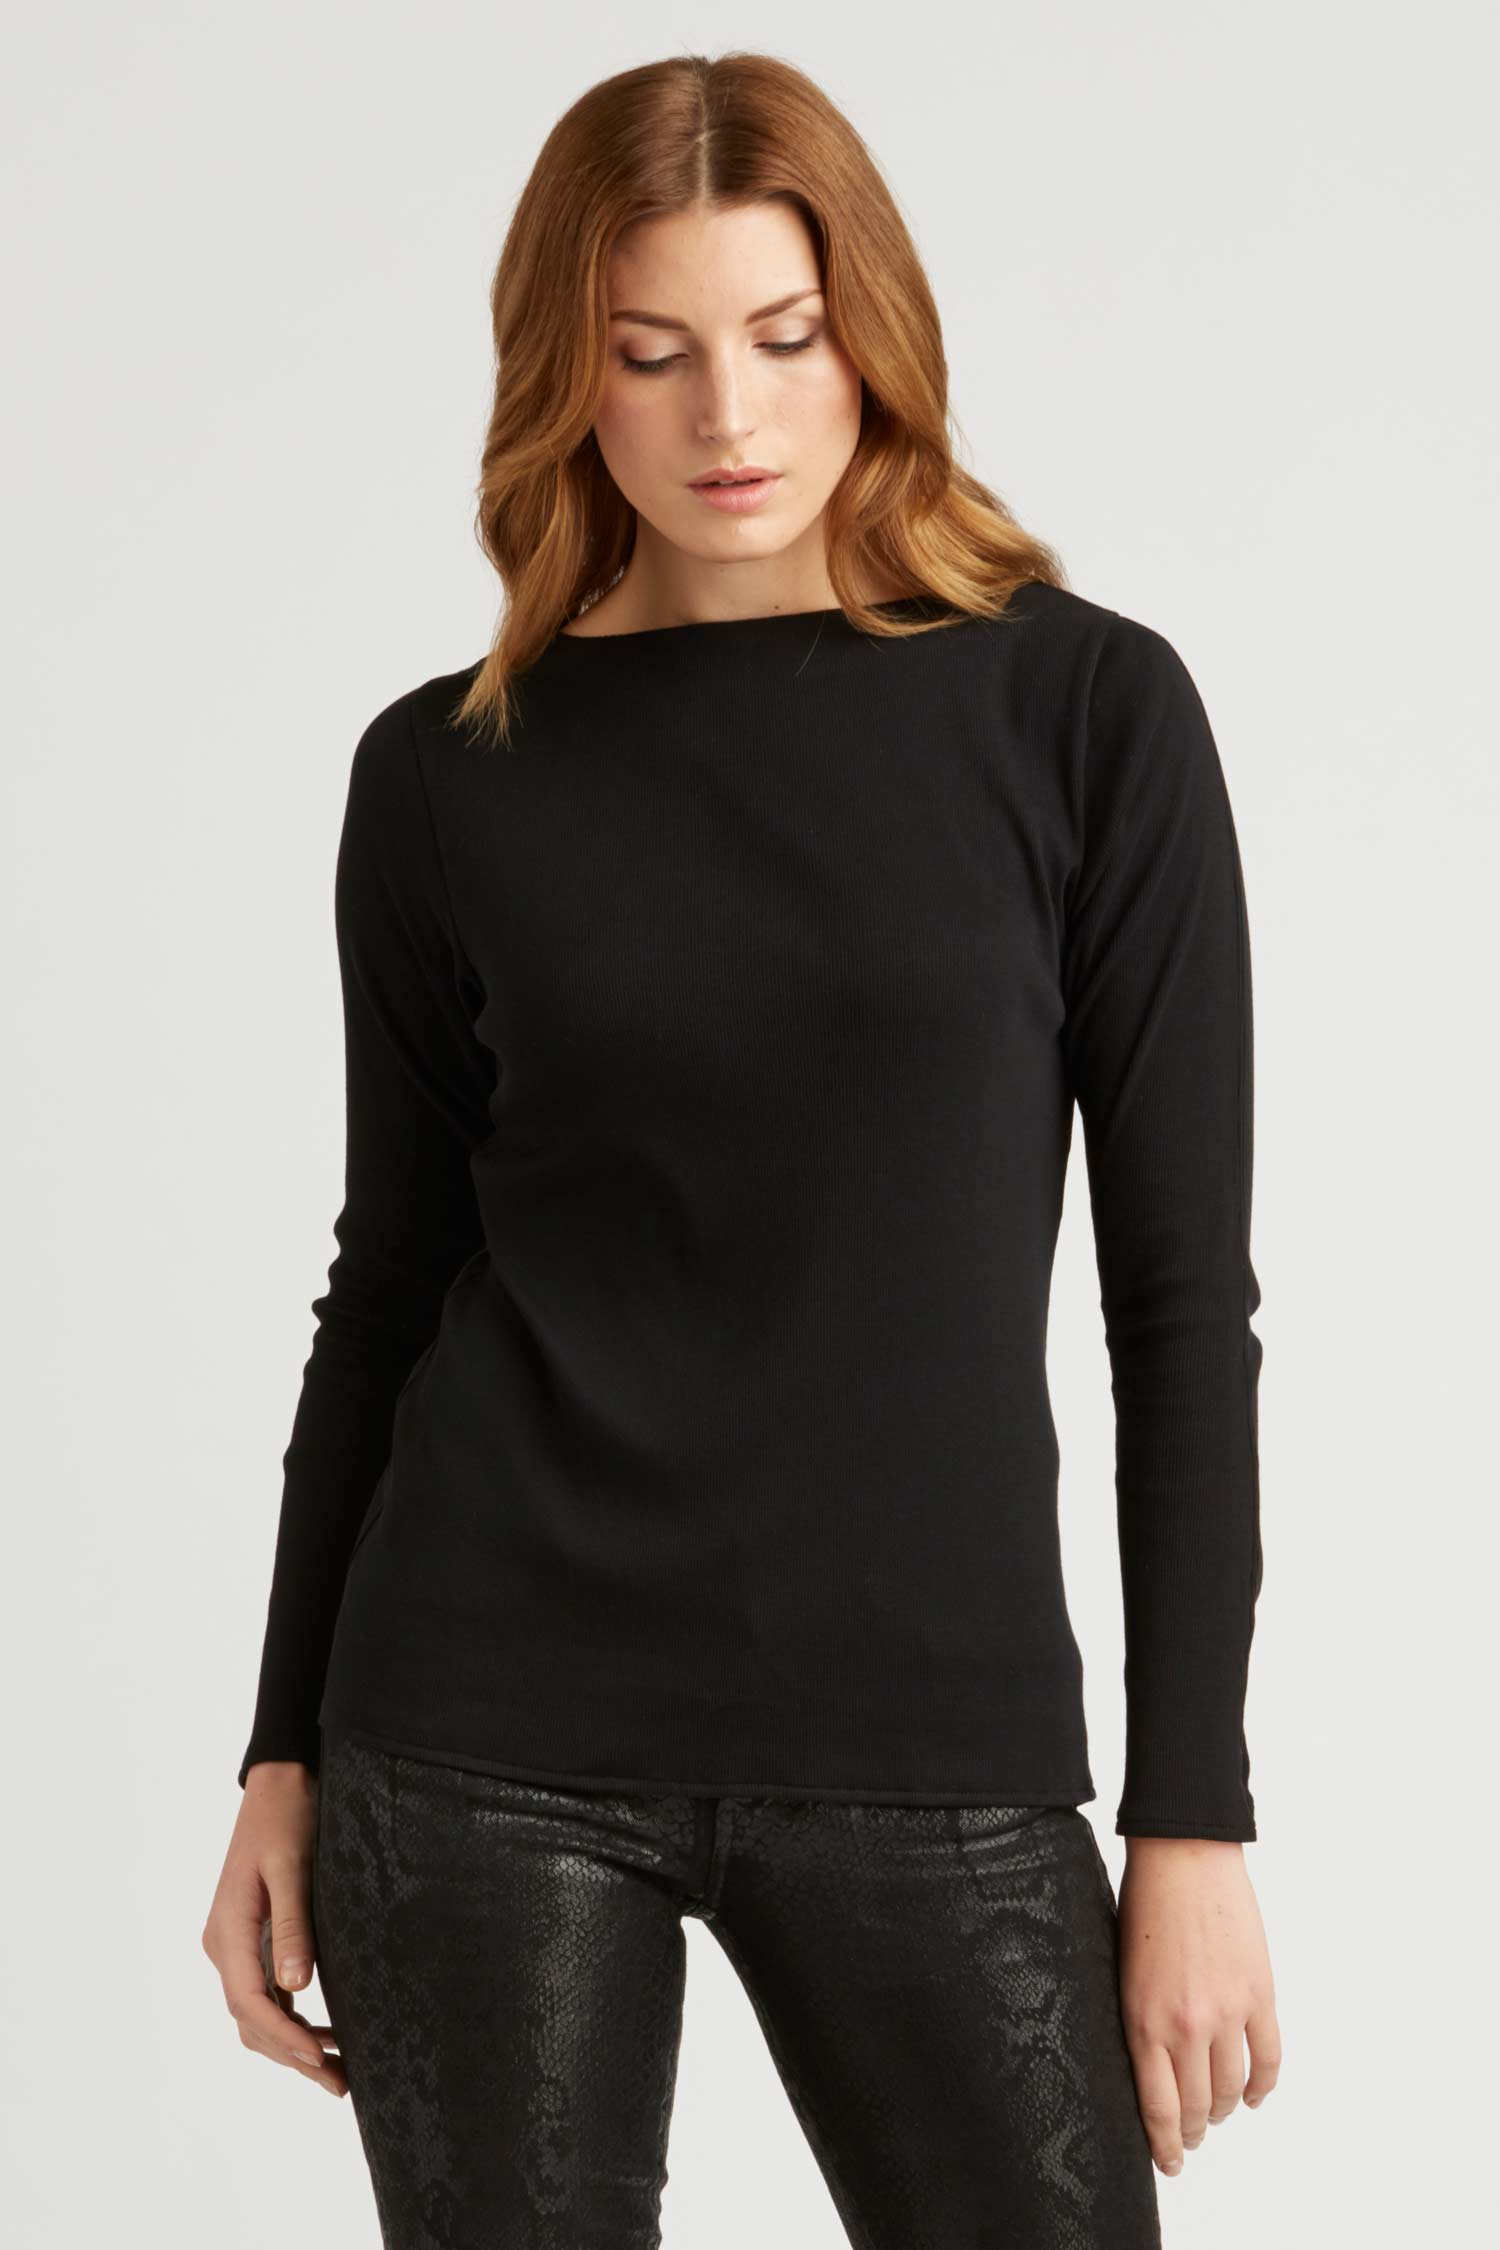 Womens Organic Cotton Rib Boatneck Top | Black | Sustainable Fashion